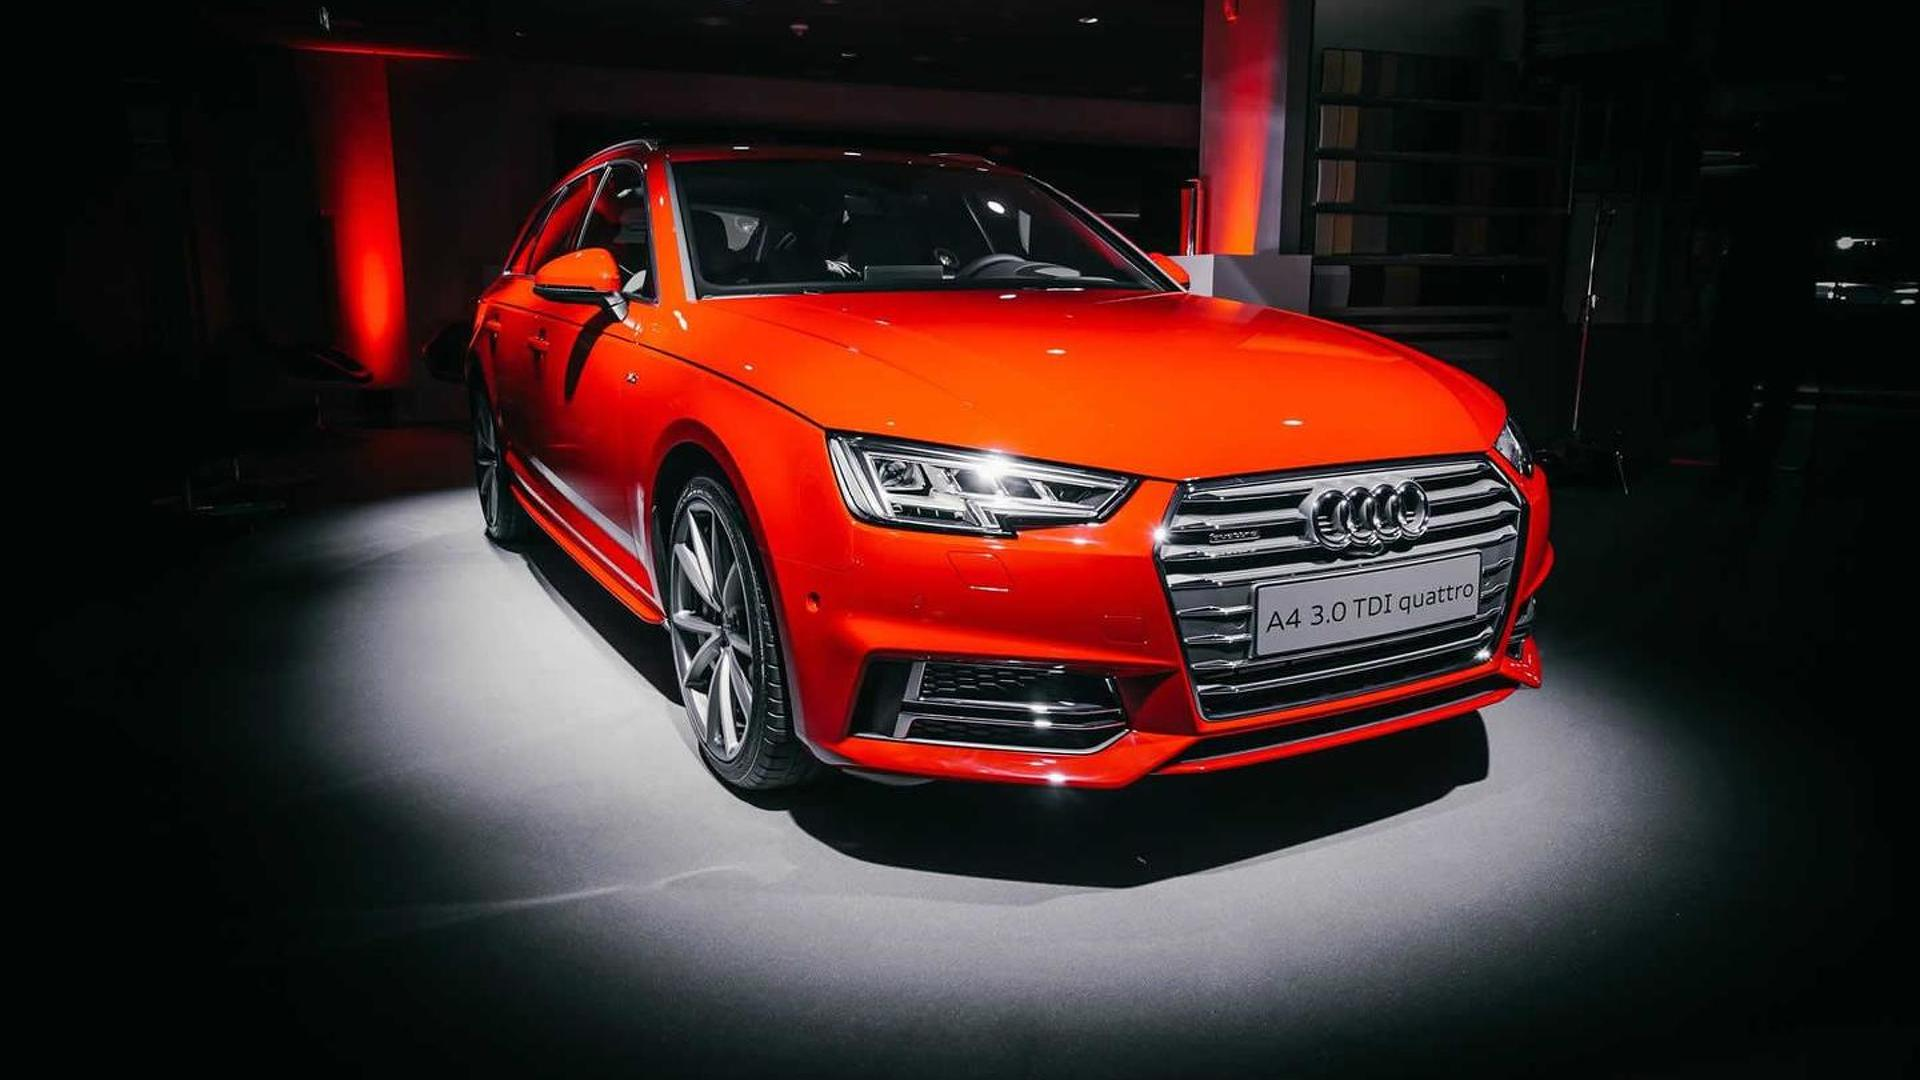 Audi drops a handful of live shots with the 2016 A4 Avant